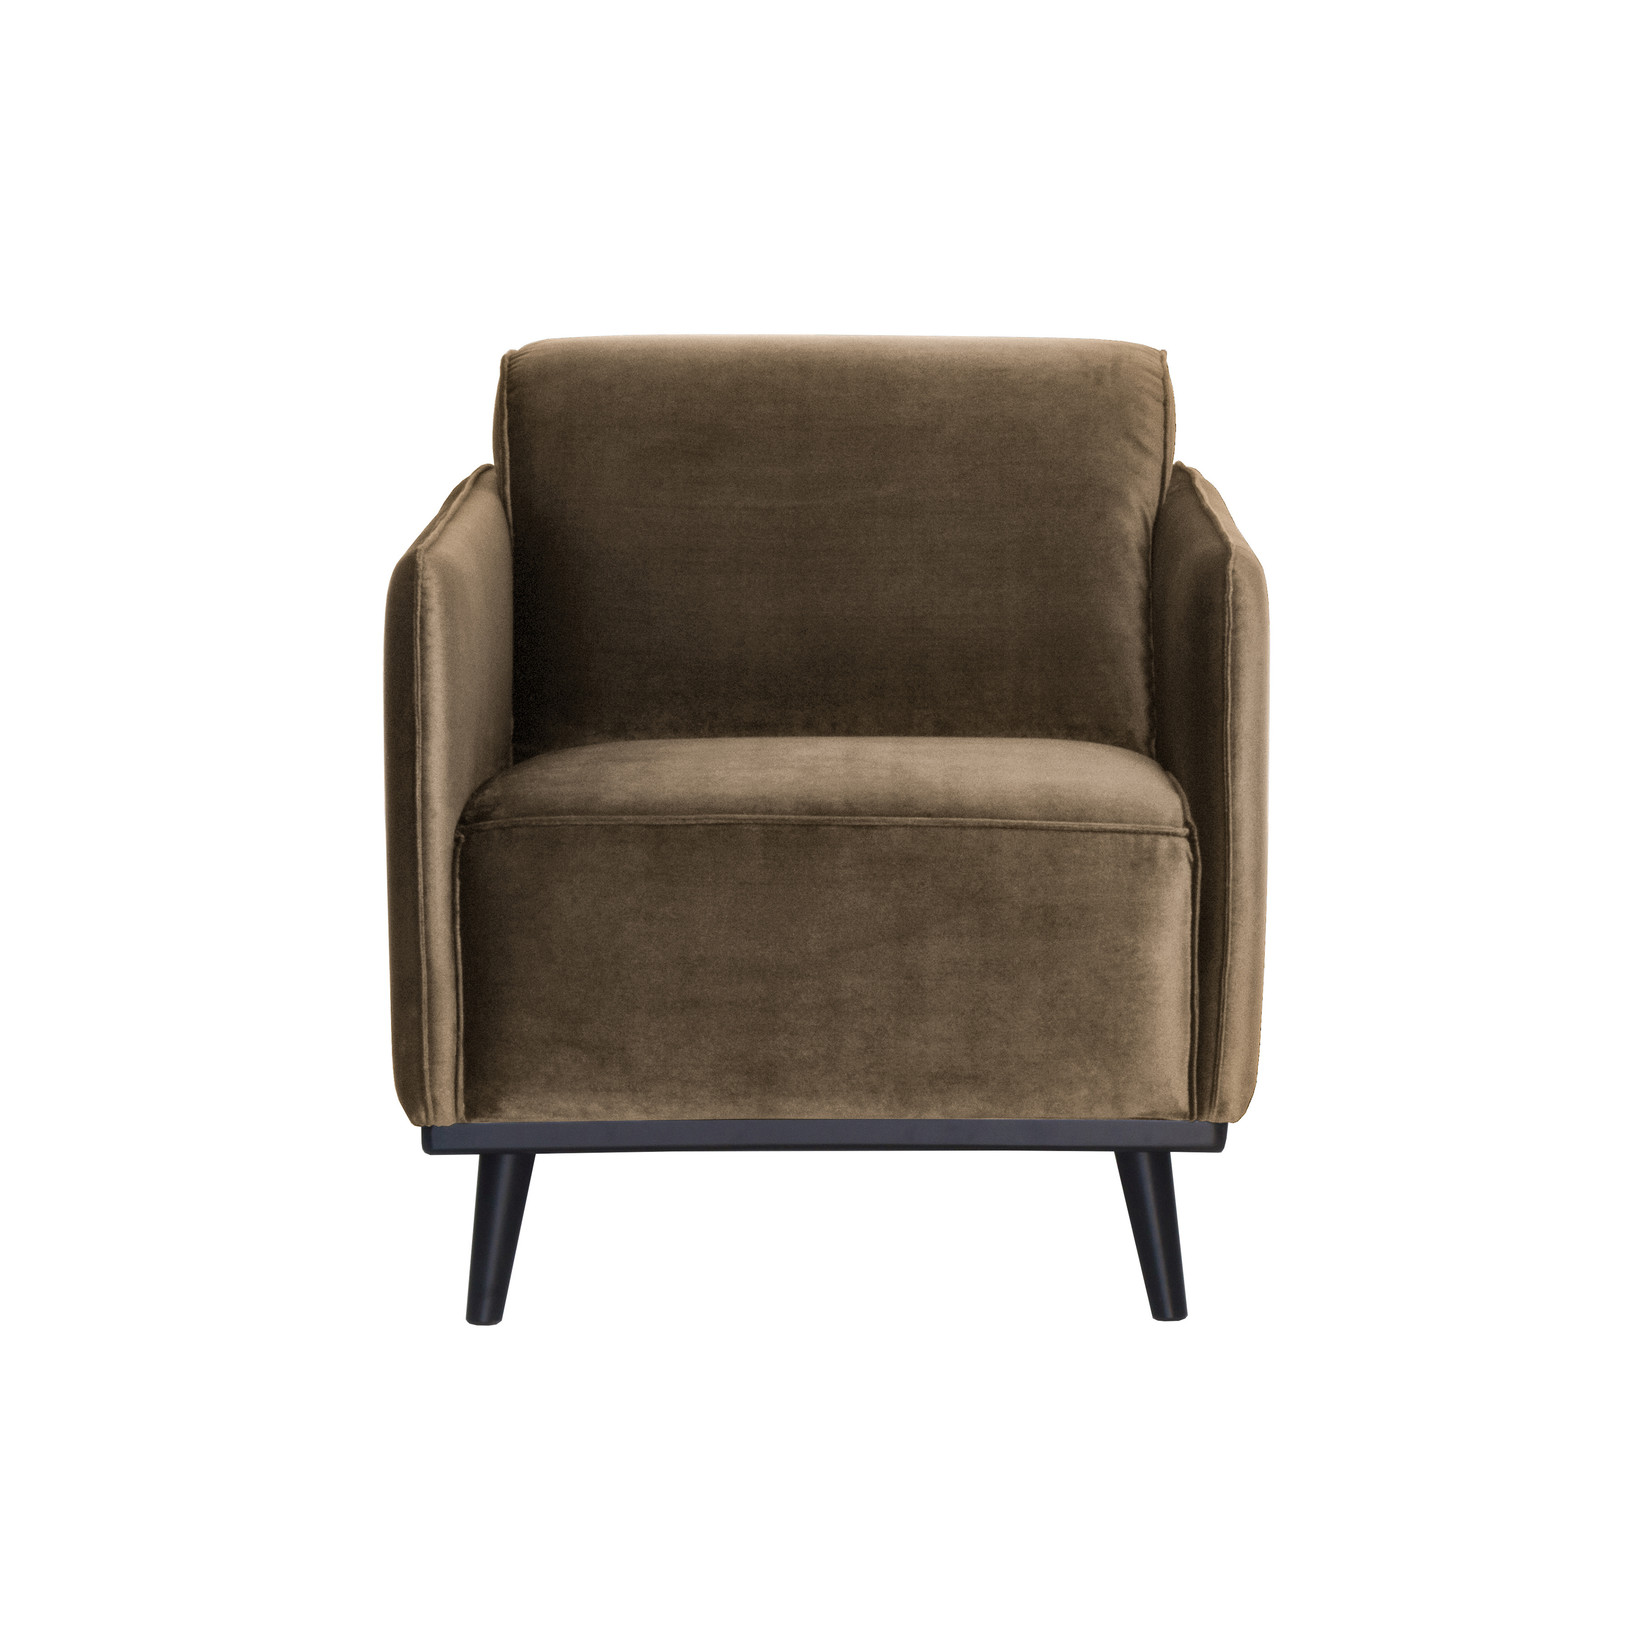 Be Pure Home Statement Fauteuil Met Arm Fluweel Taupe